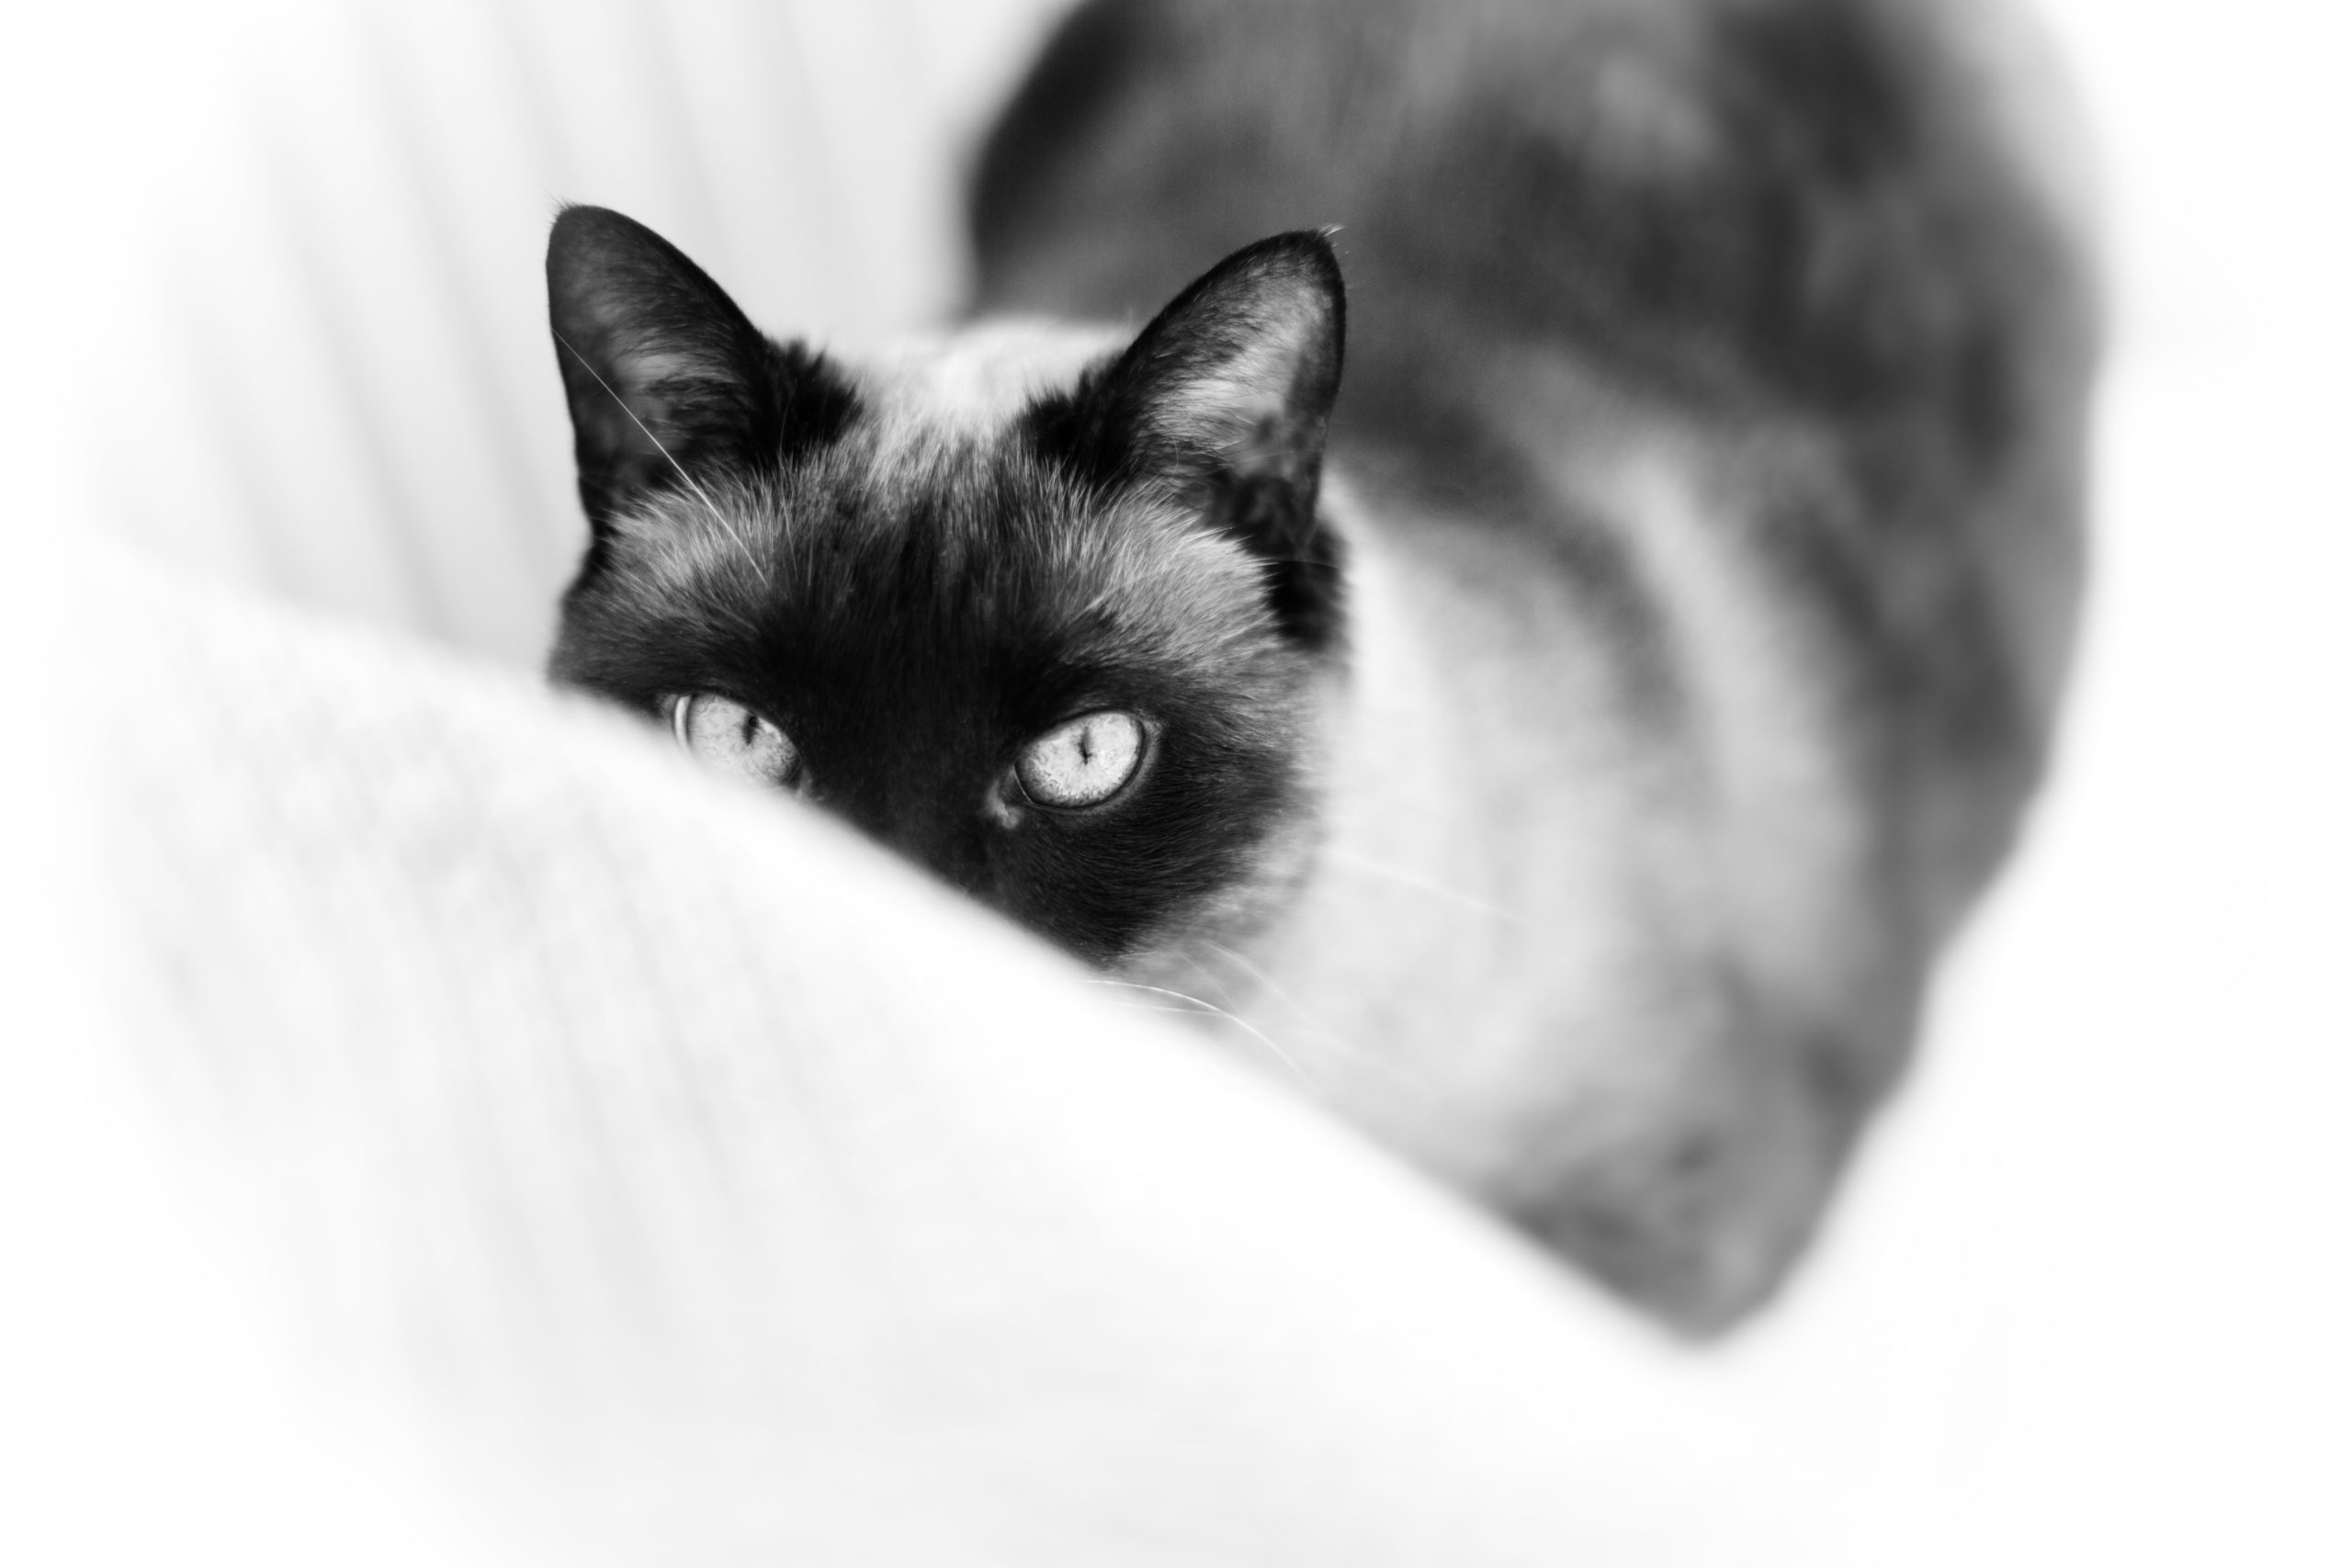 Photographe animal de compagnie, chat, noir et blanc